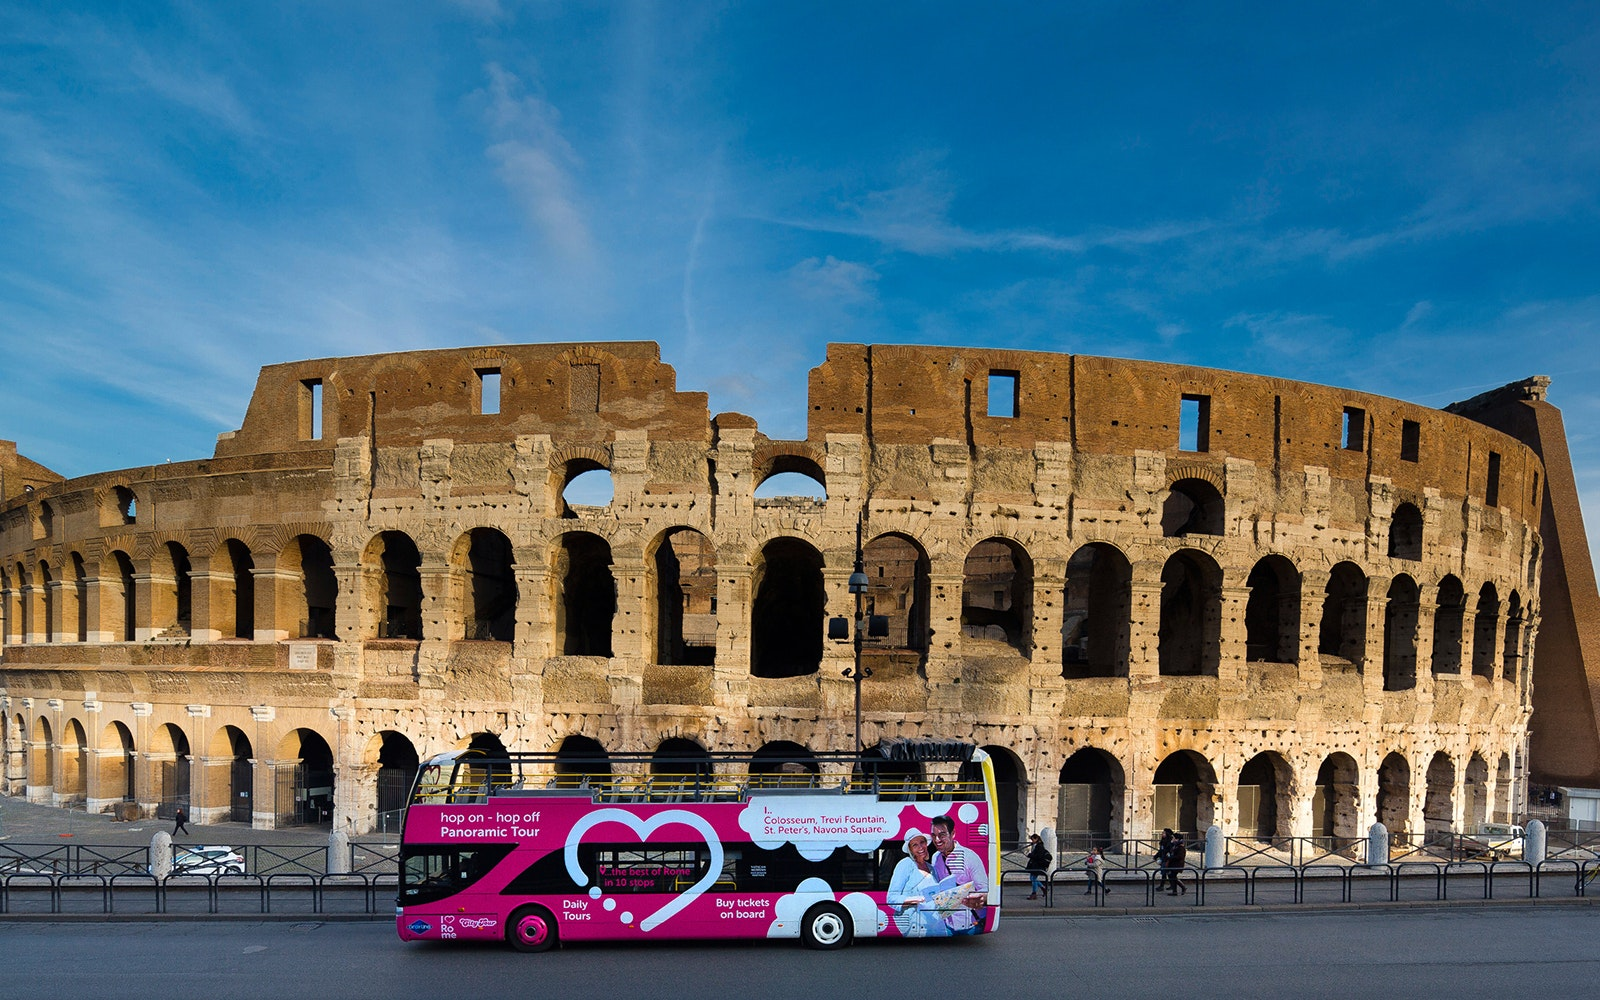 Rome travel guide - hop on hop off